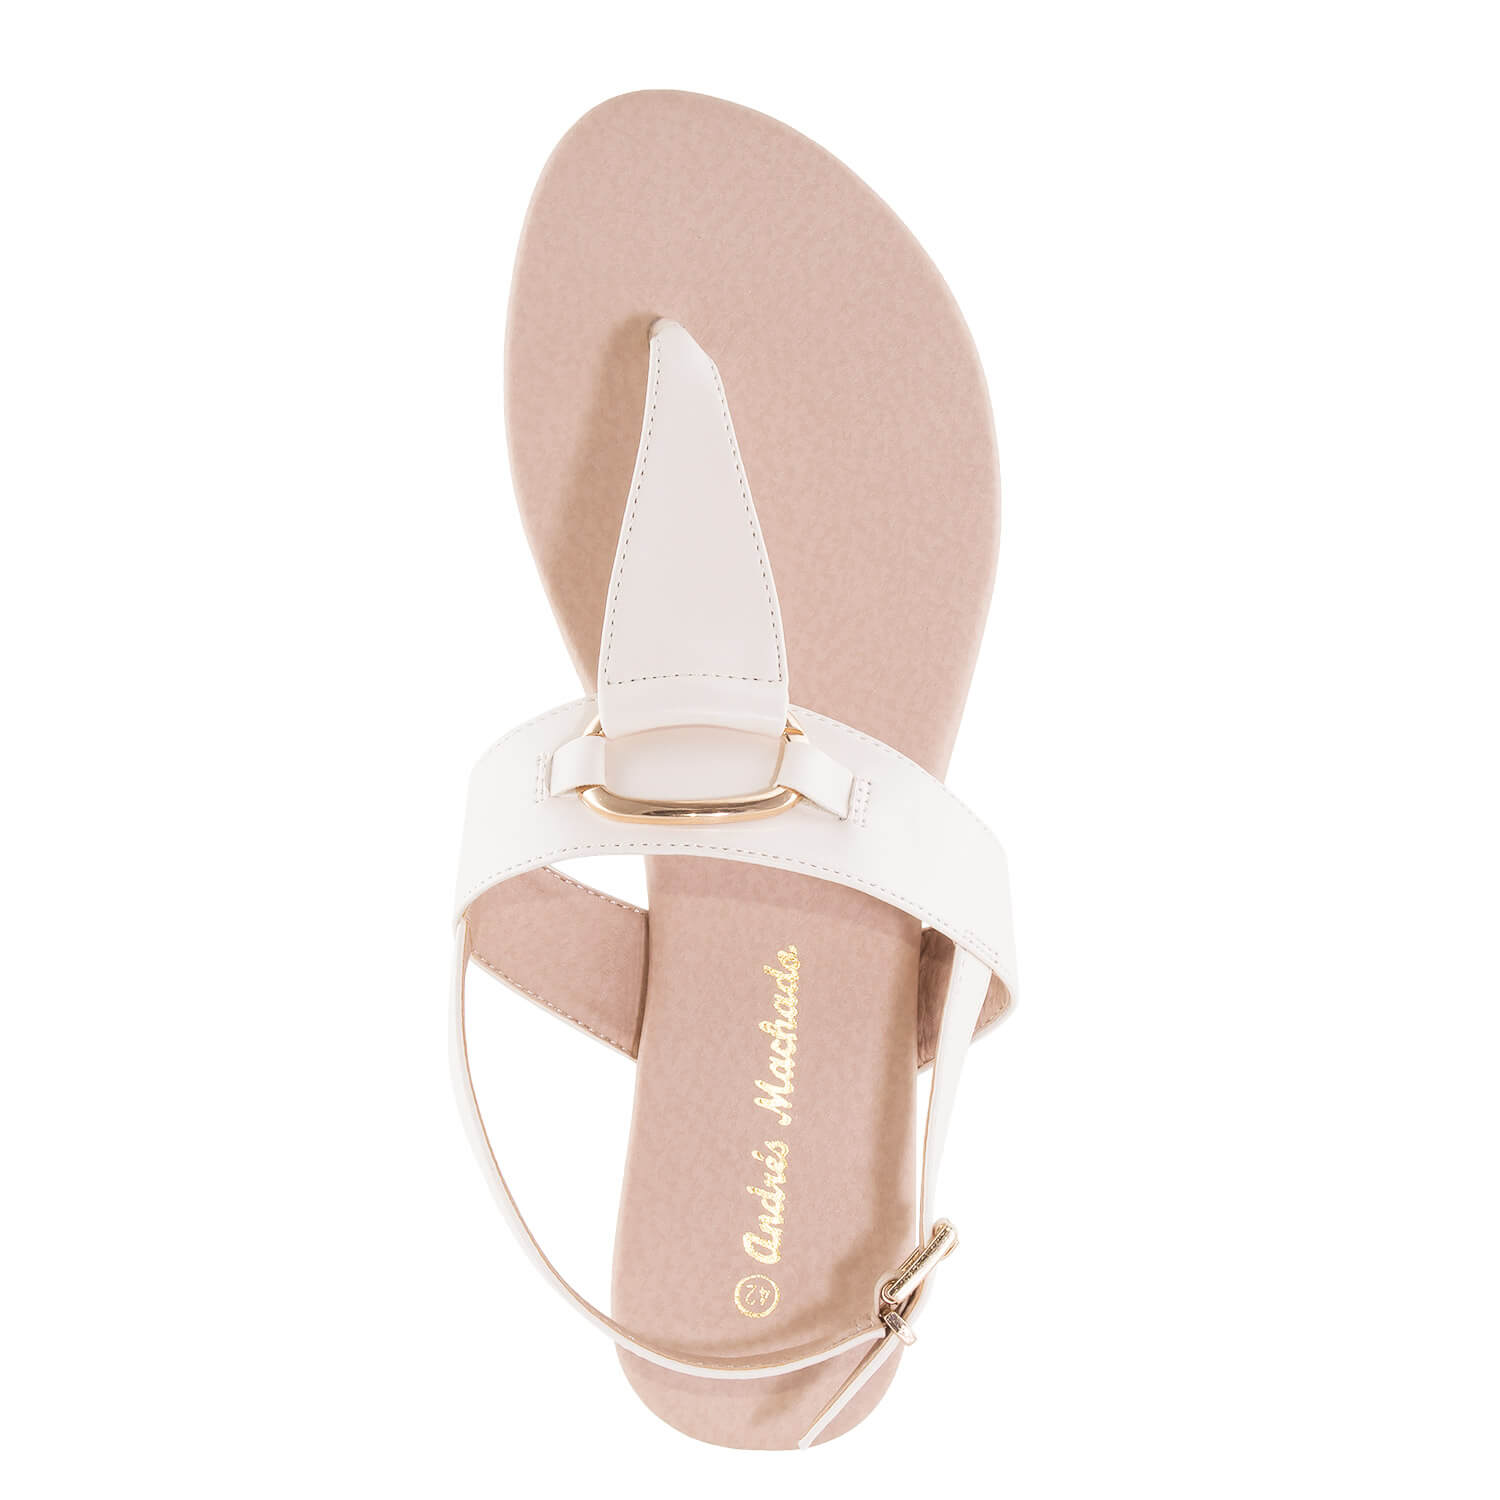 T-Bar-Sandalen in Soft-Beige